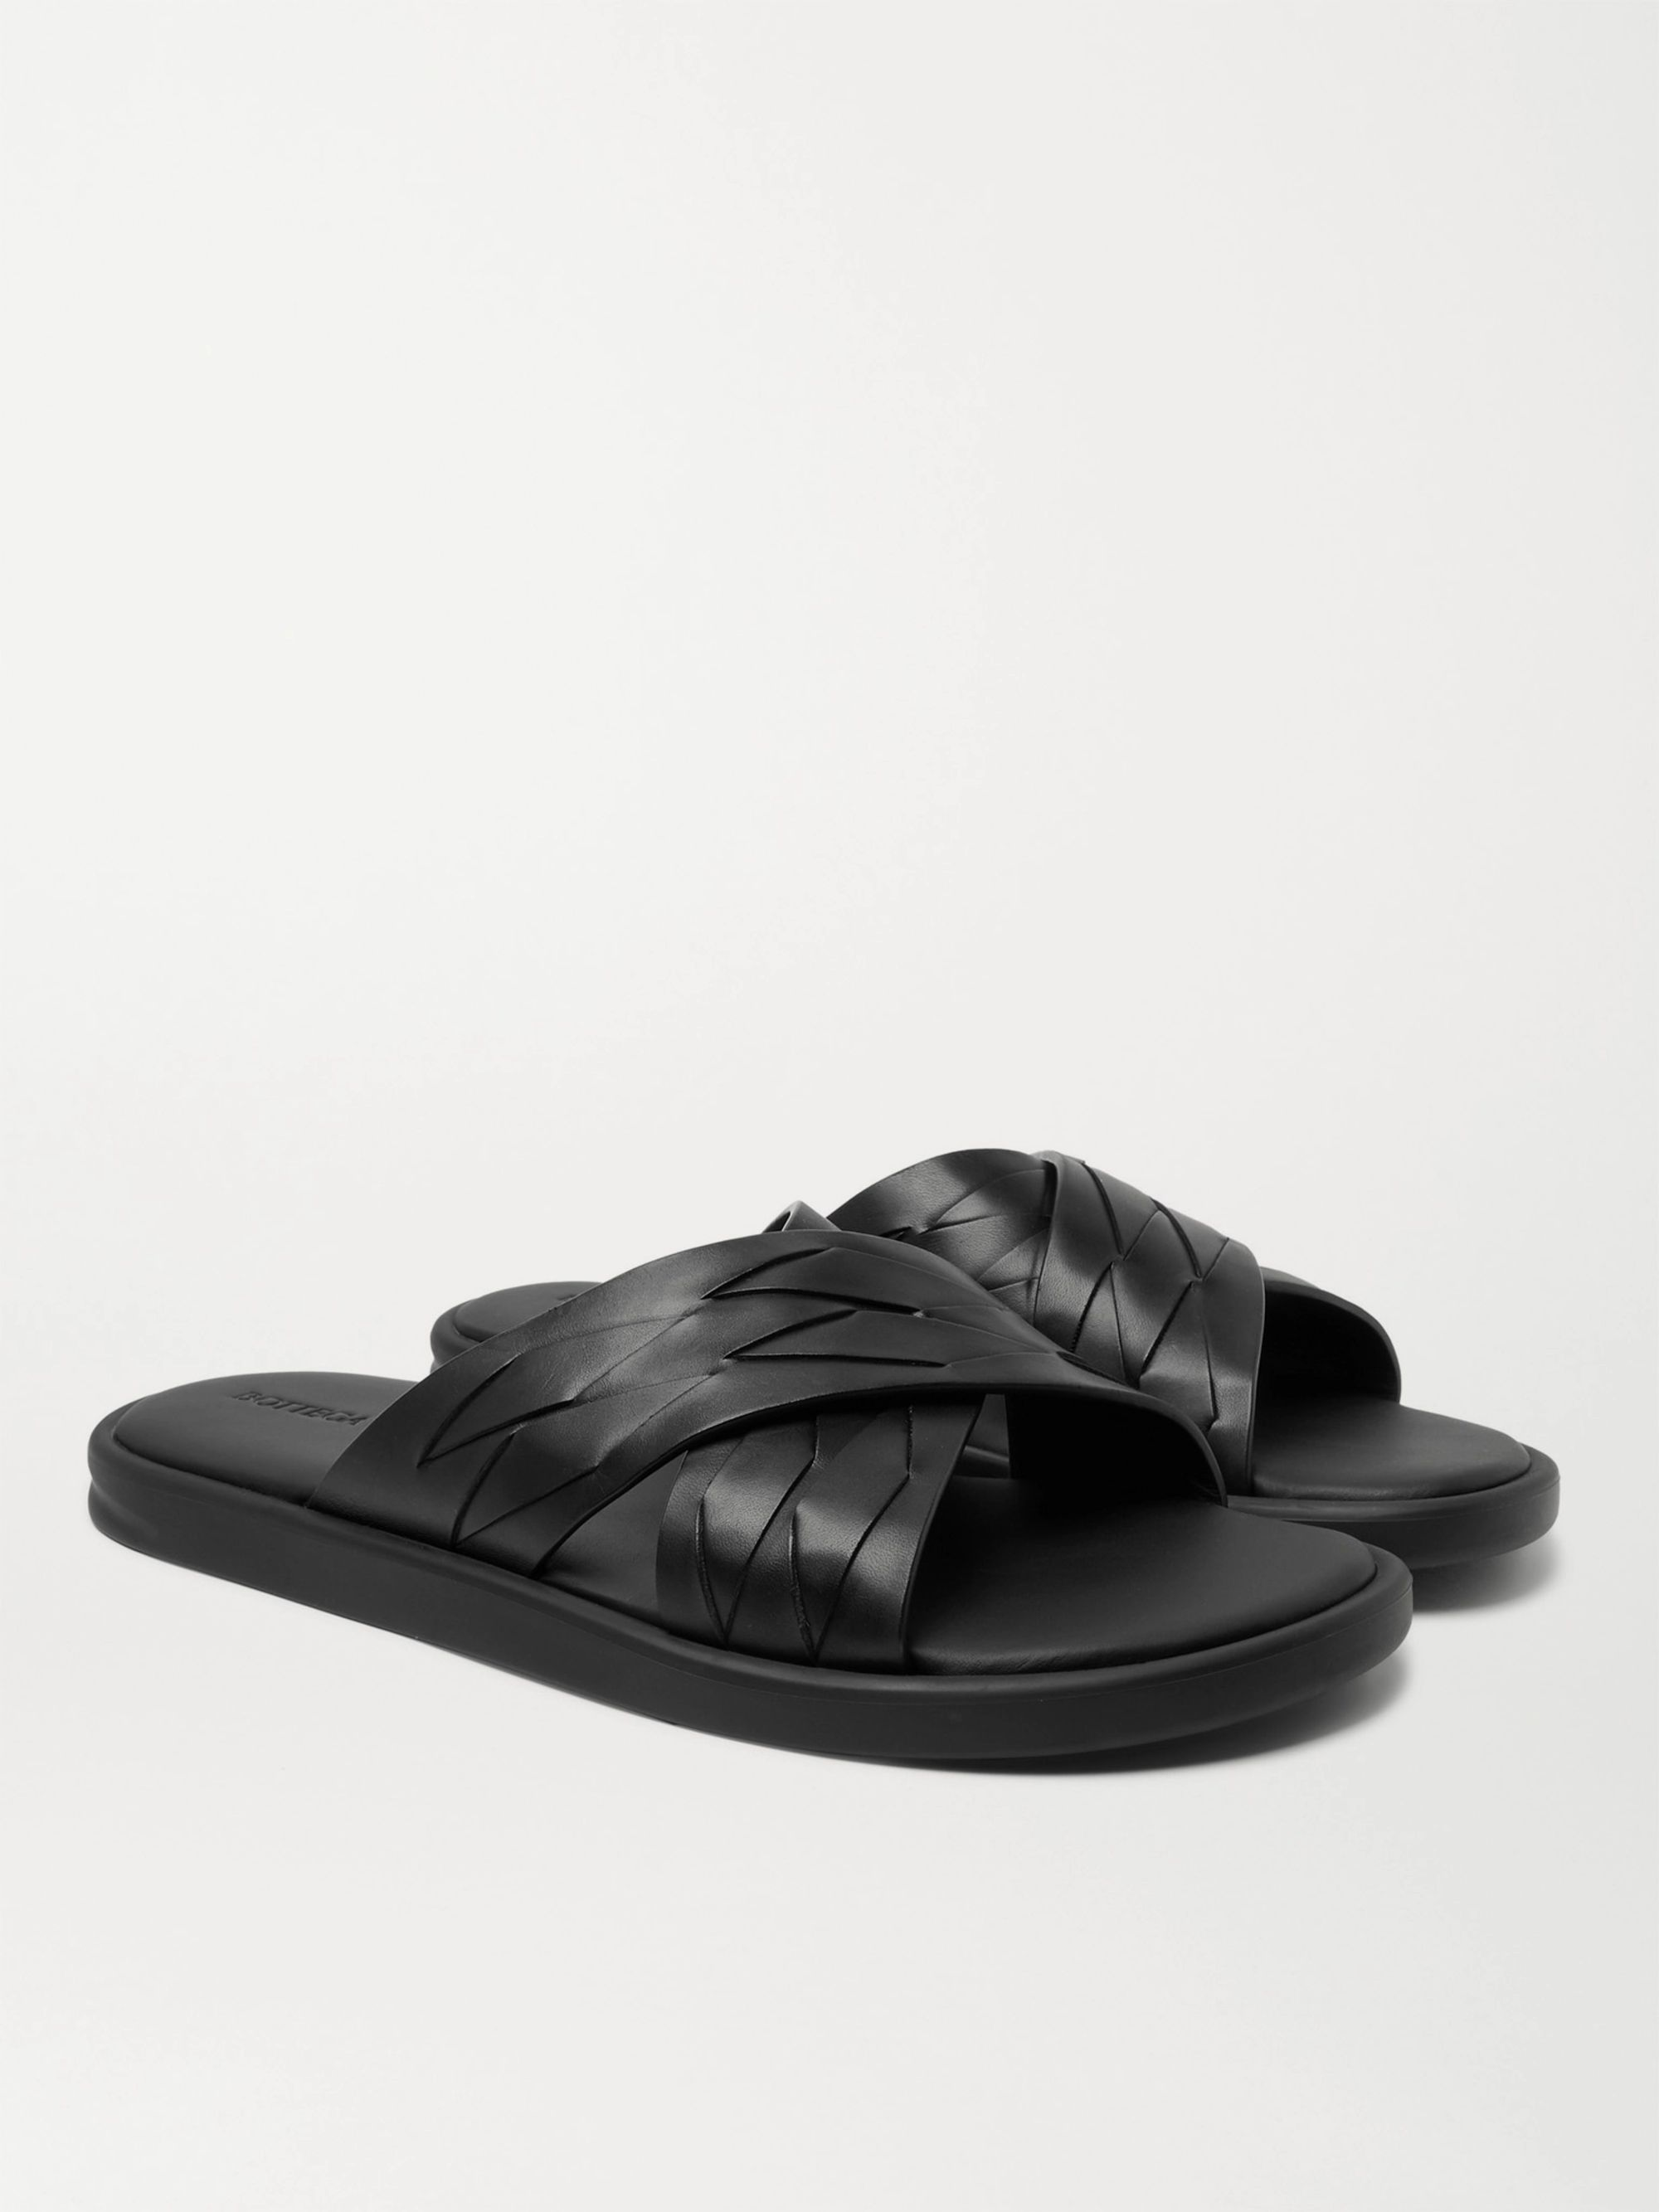 Bottega Veneta Woven Leather Sandals